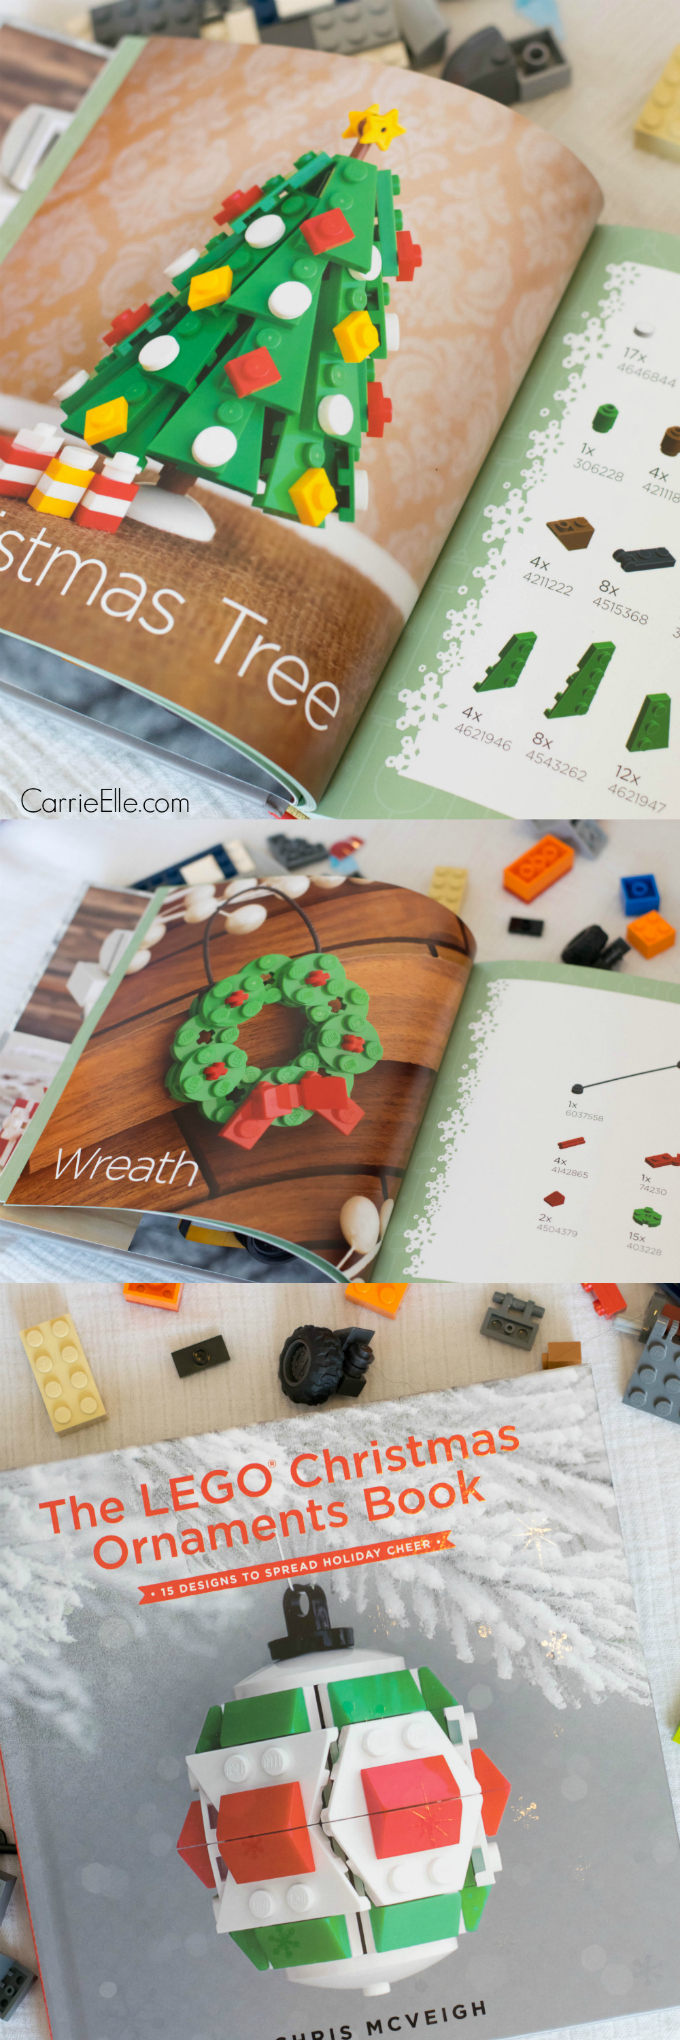 Lego lovers youull love the lego christmas ornaments book